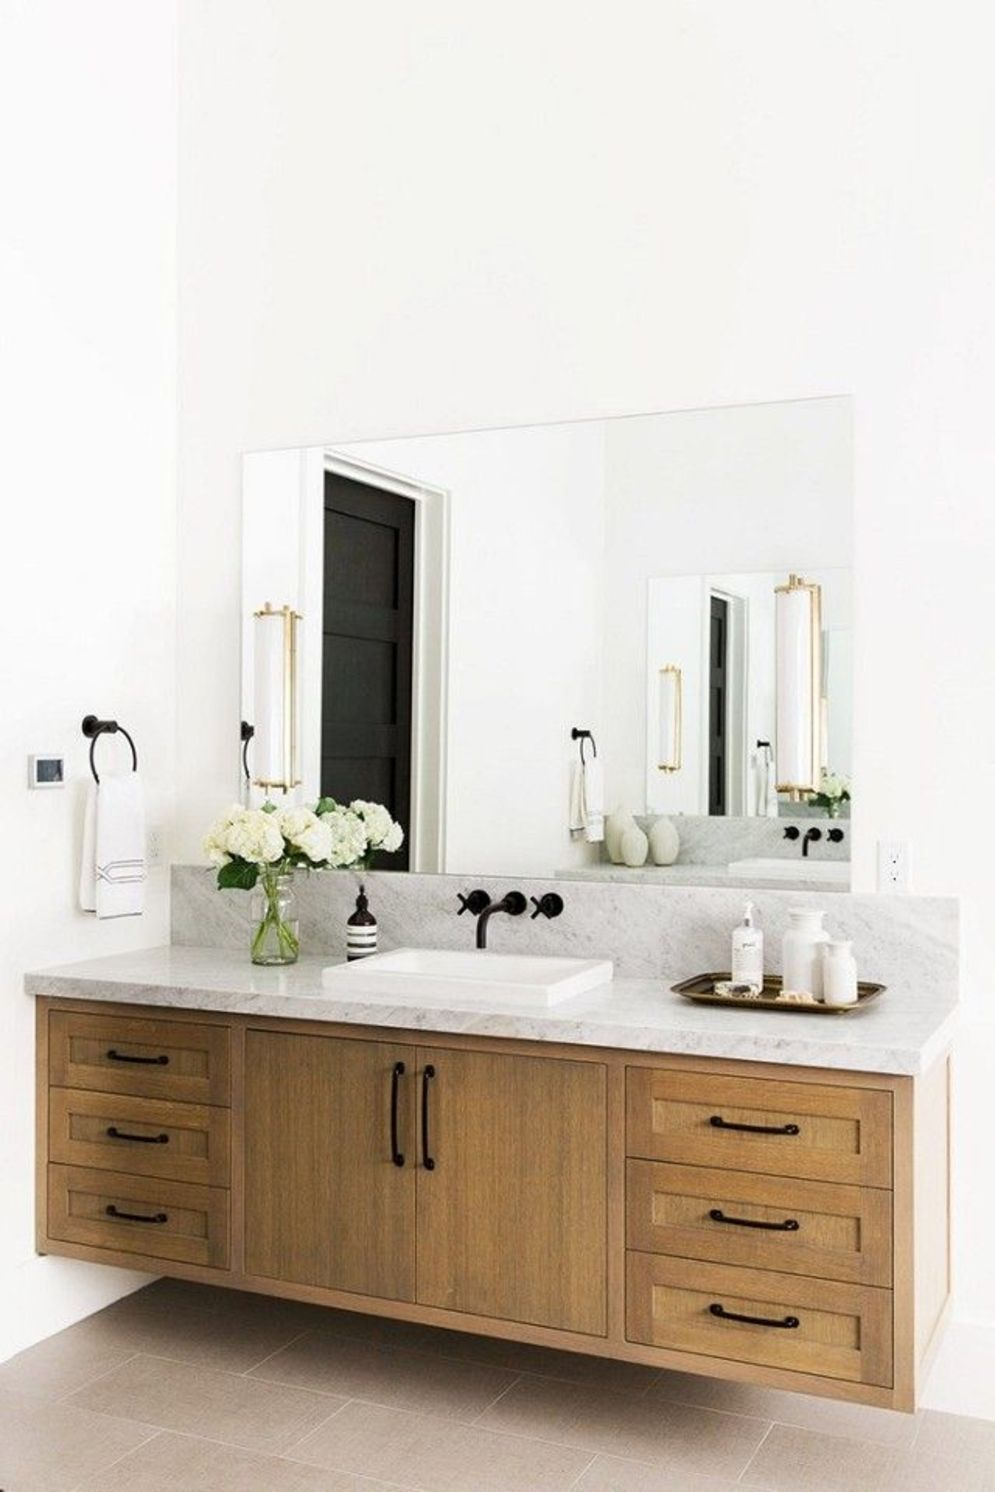 Most savvy bathroom designs with elegant wood finish to give more natural feel Image 16